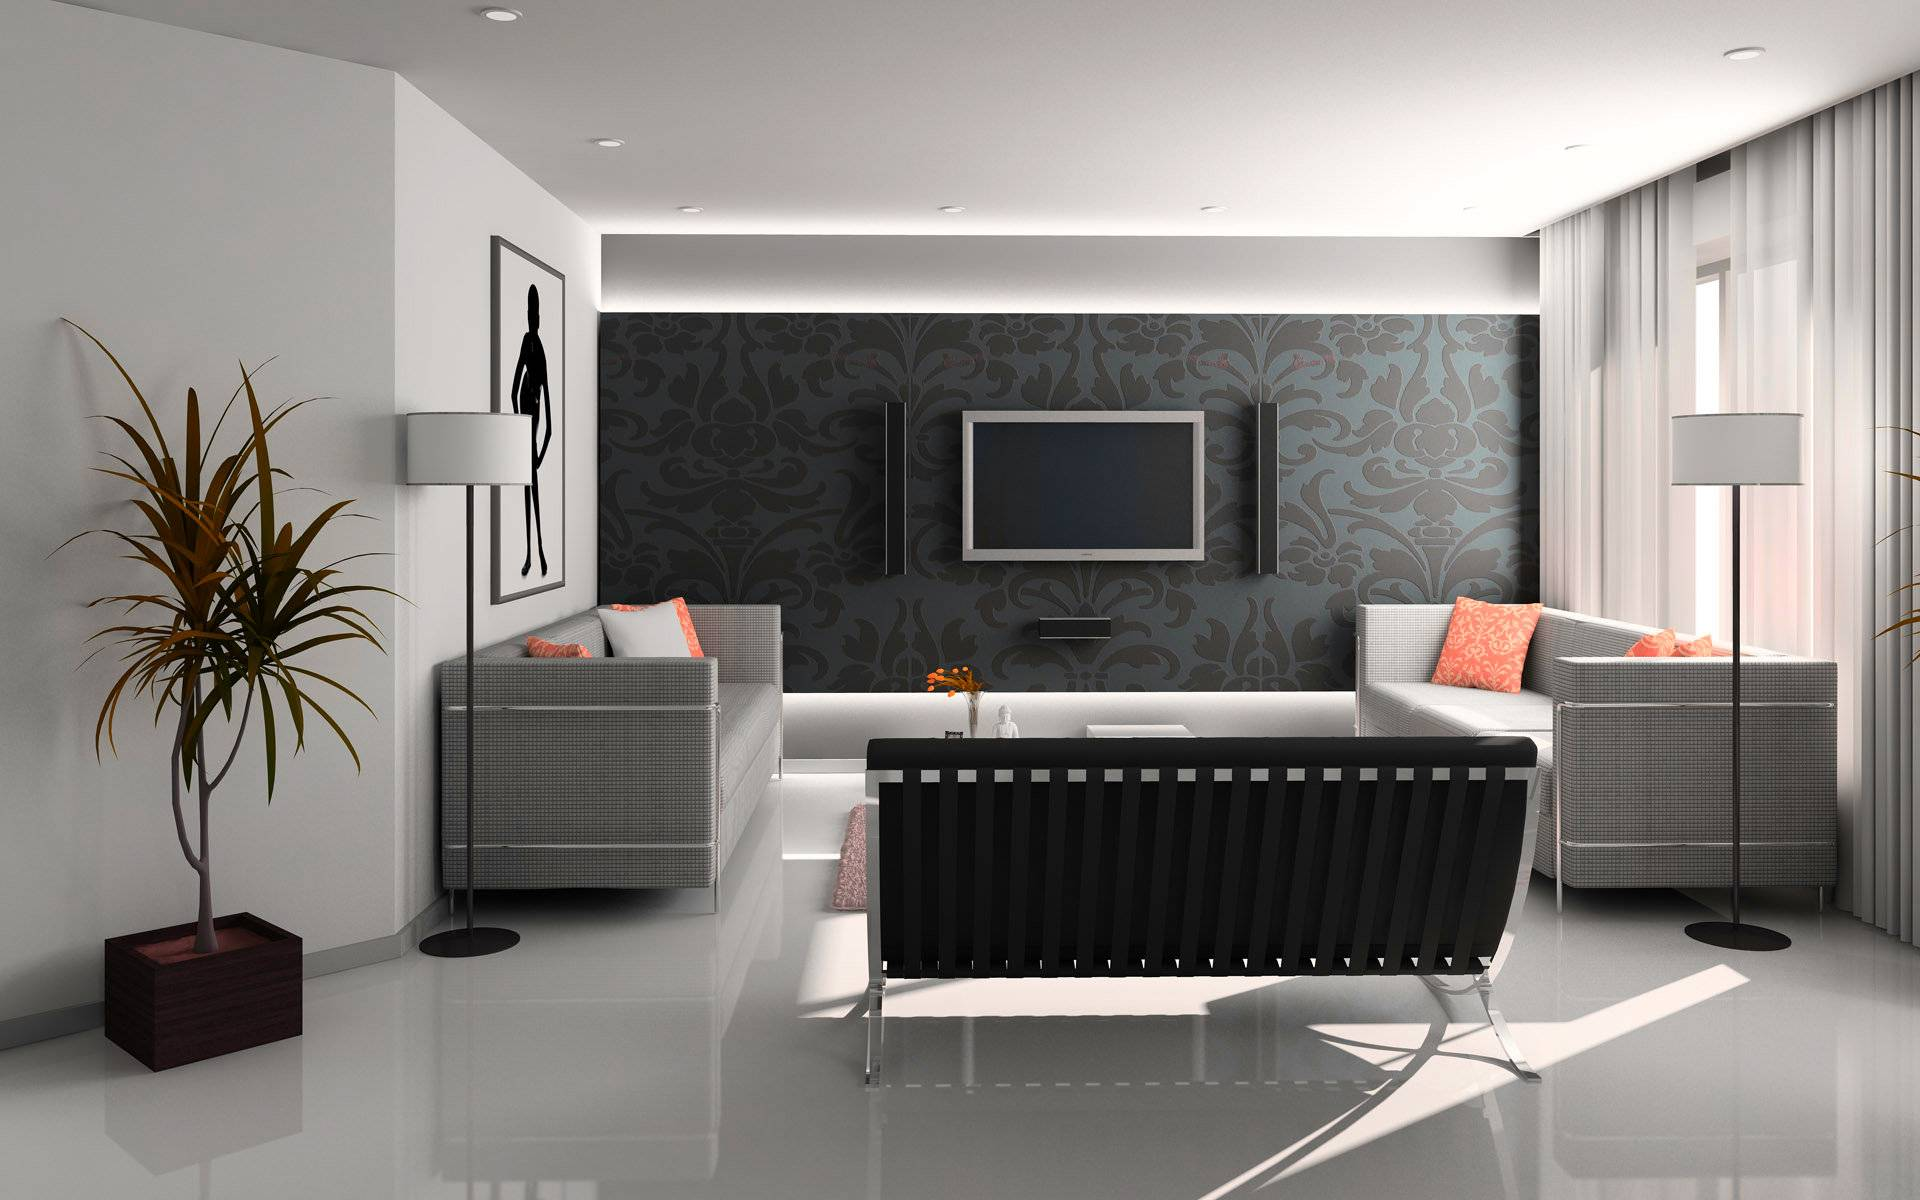 Interior design ideas appstore for android for Home style interior design apk